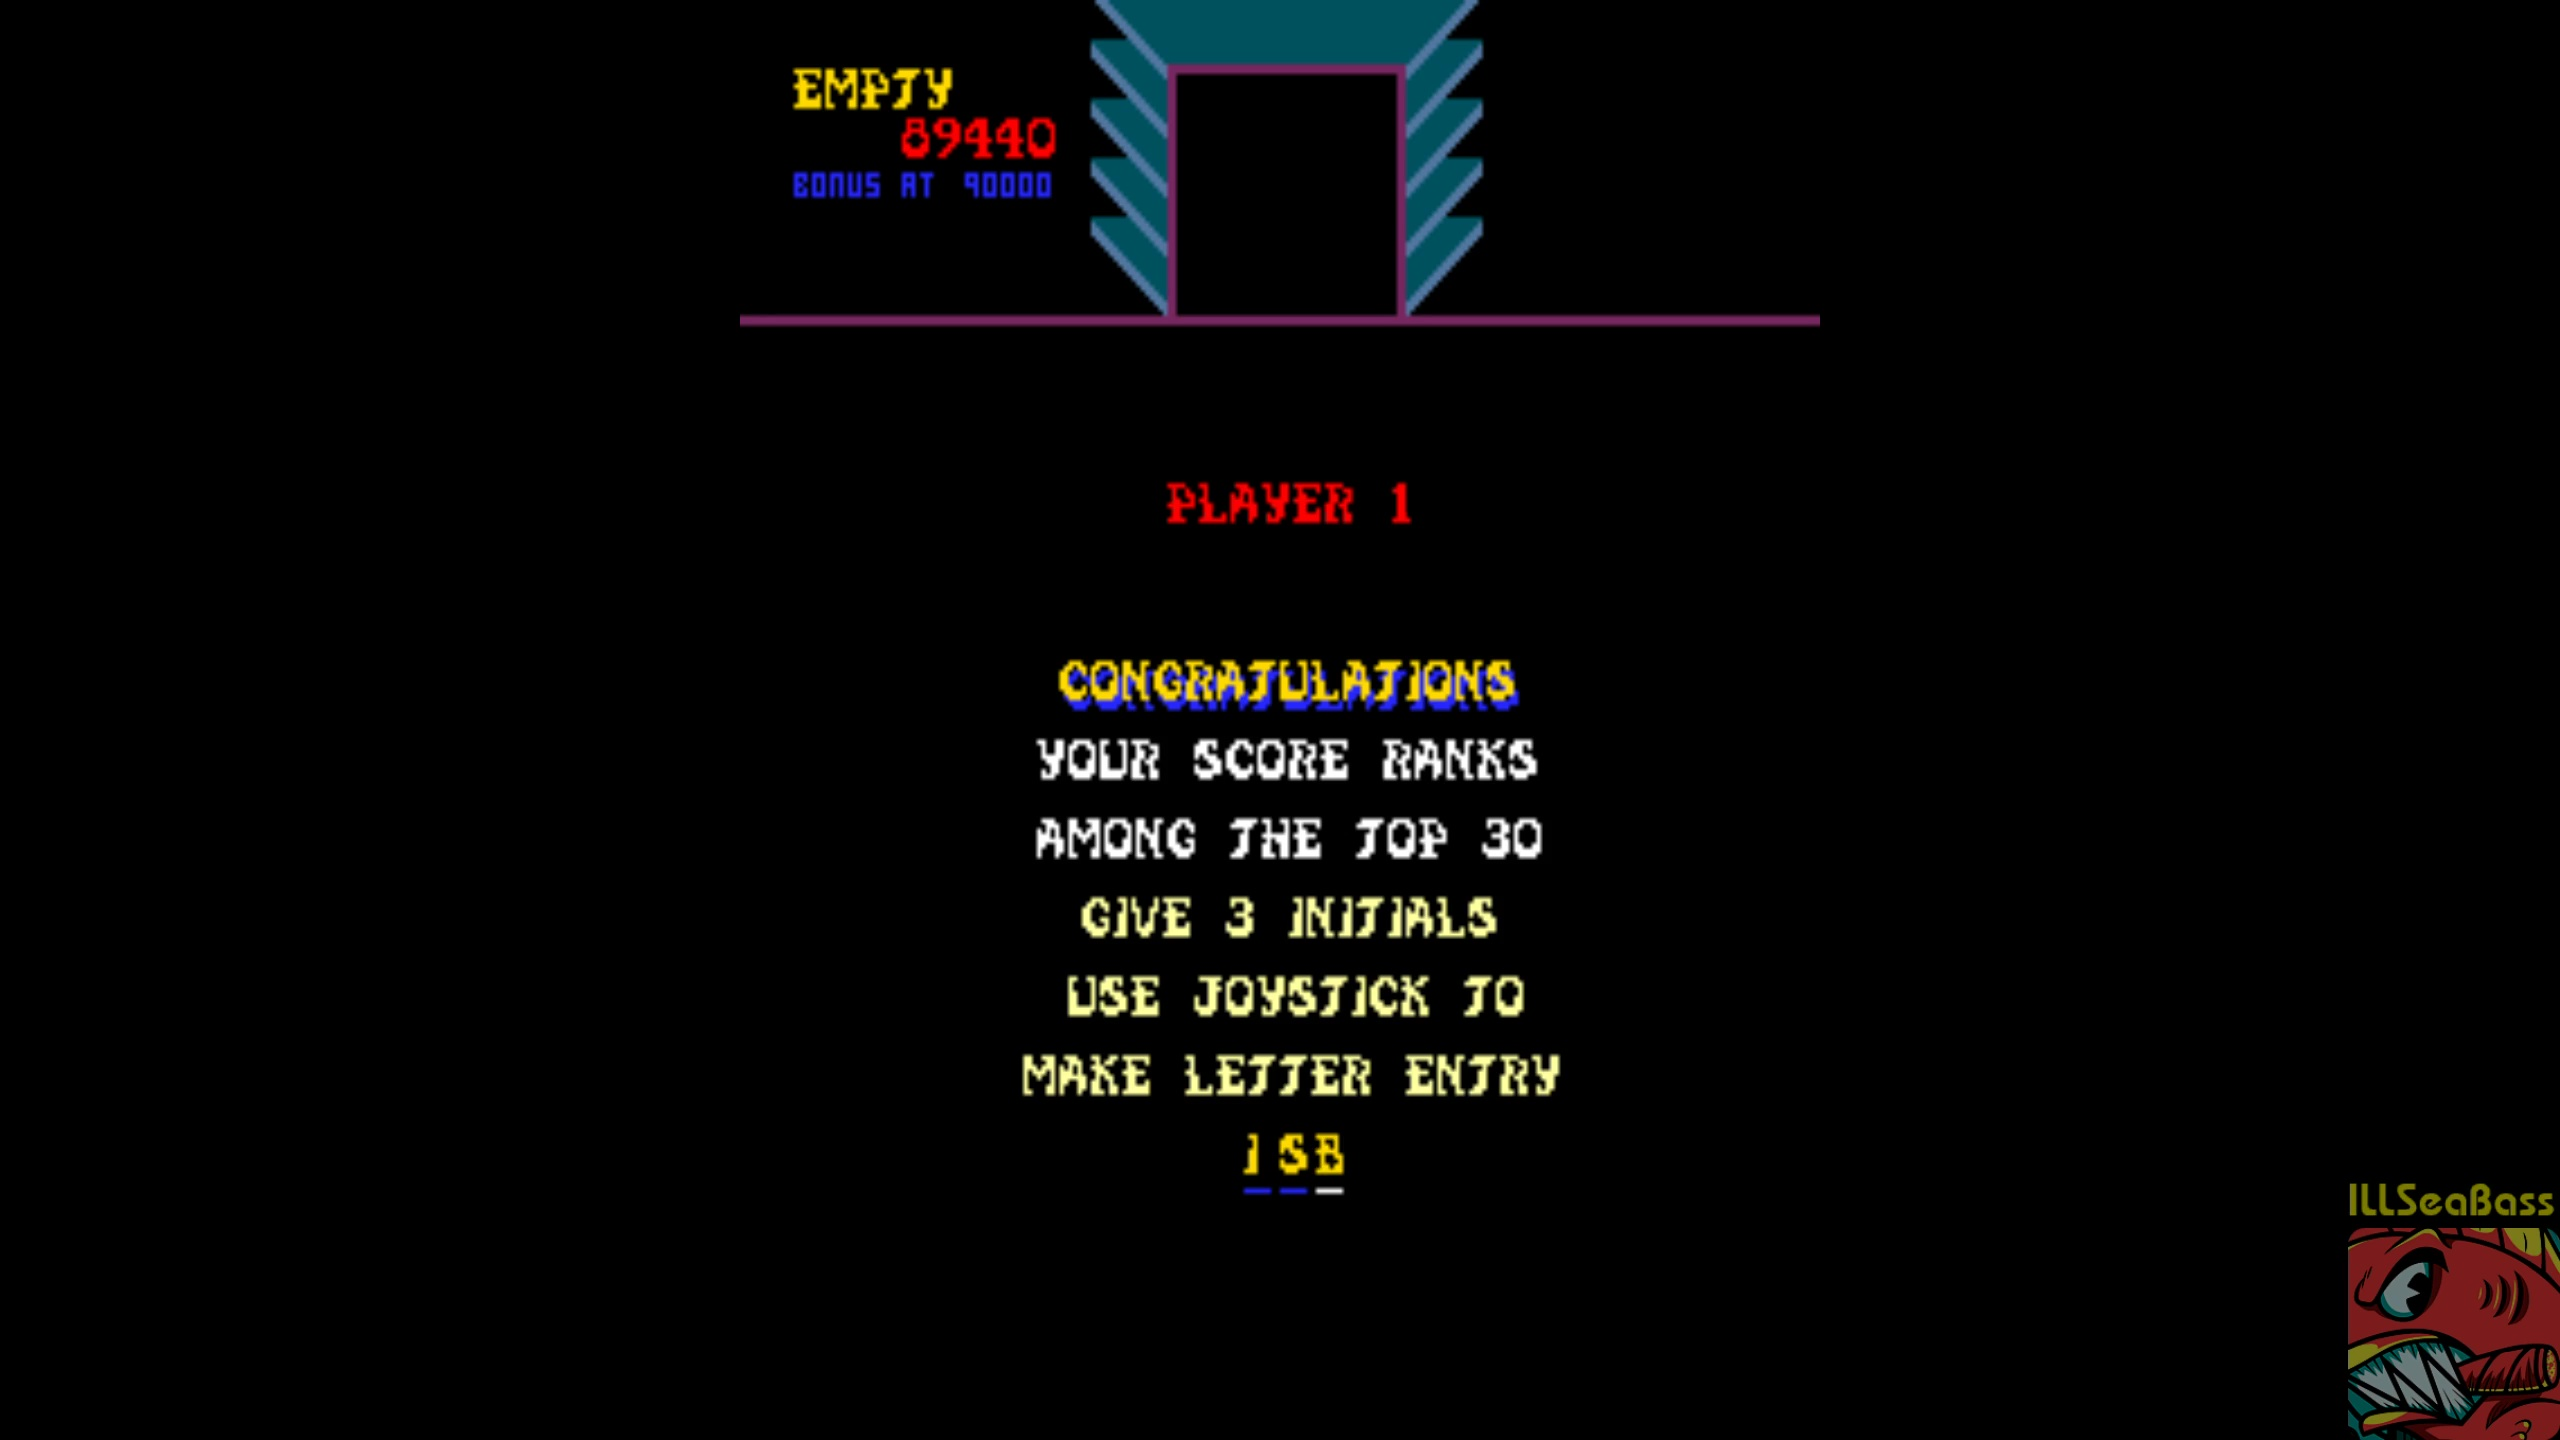 ILLSeaBass: Sinistar (Arcade Emulated / M.A.M.E.) 89,440 points on 2018-04-02 20:36:38